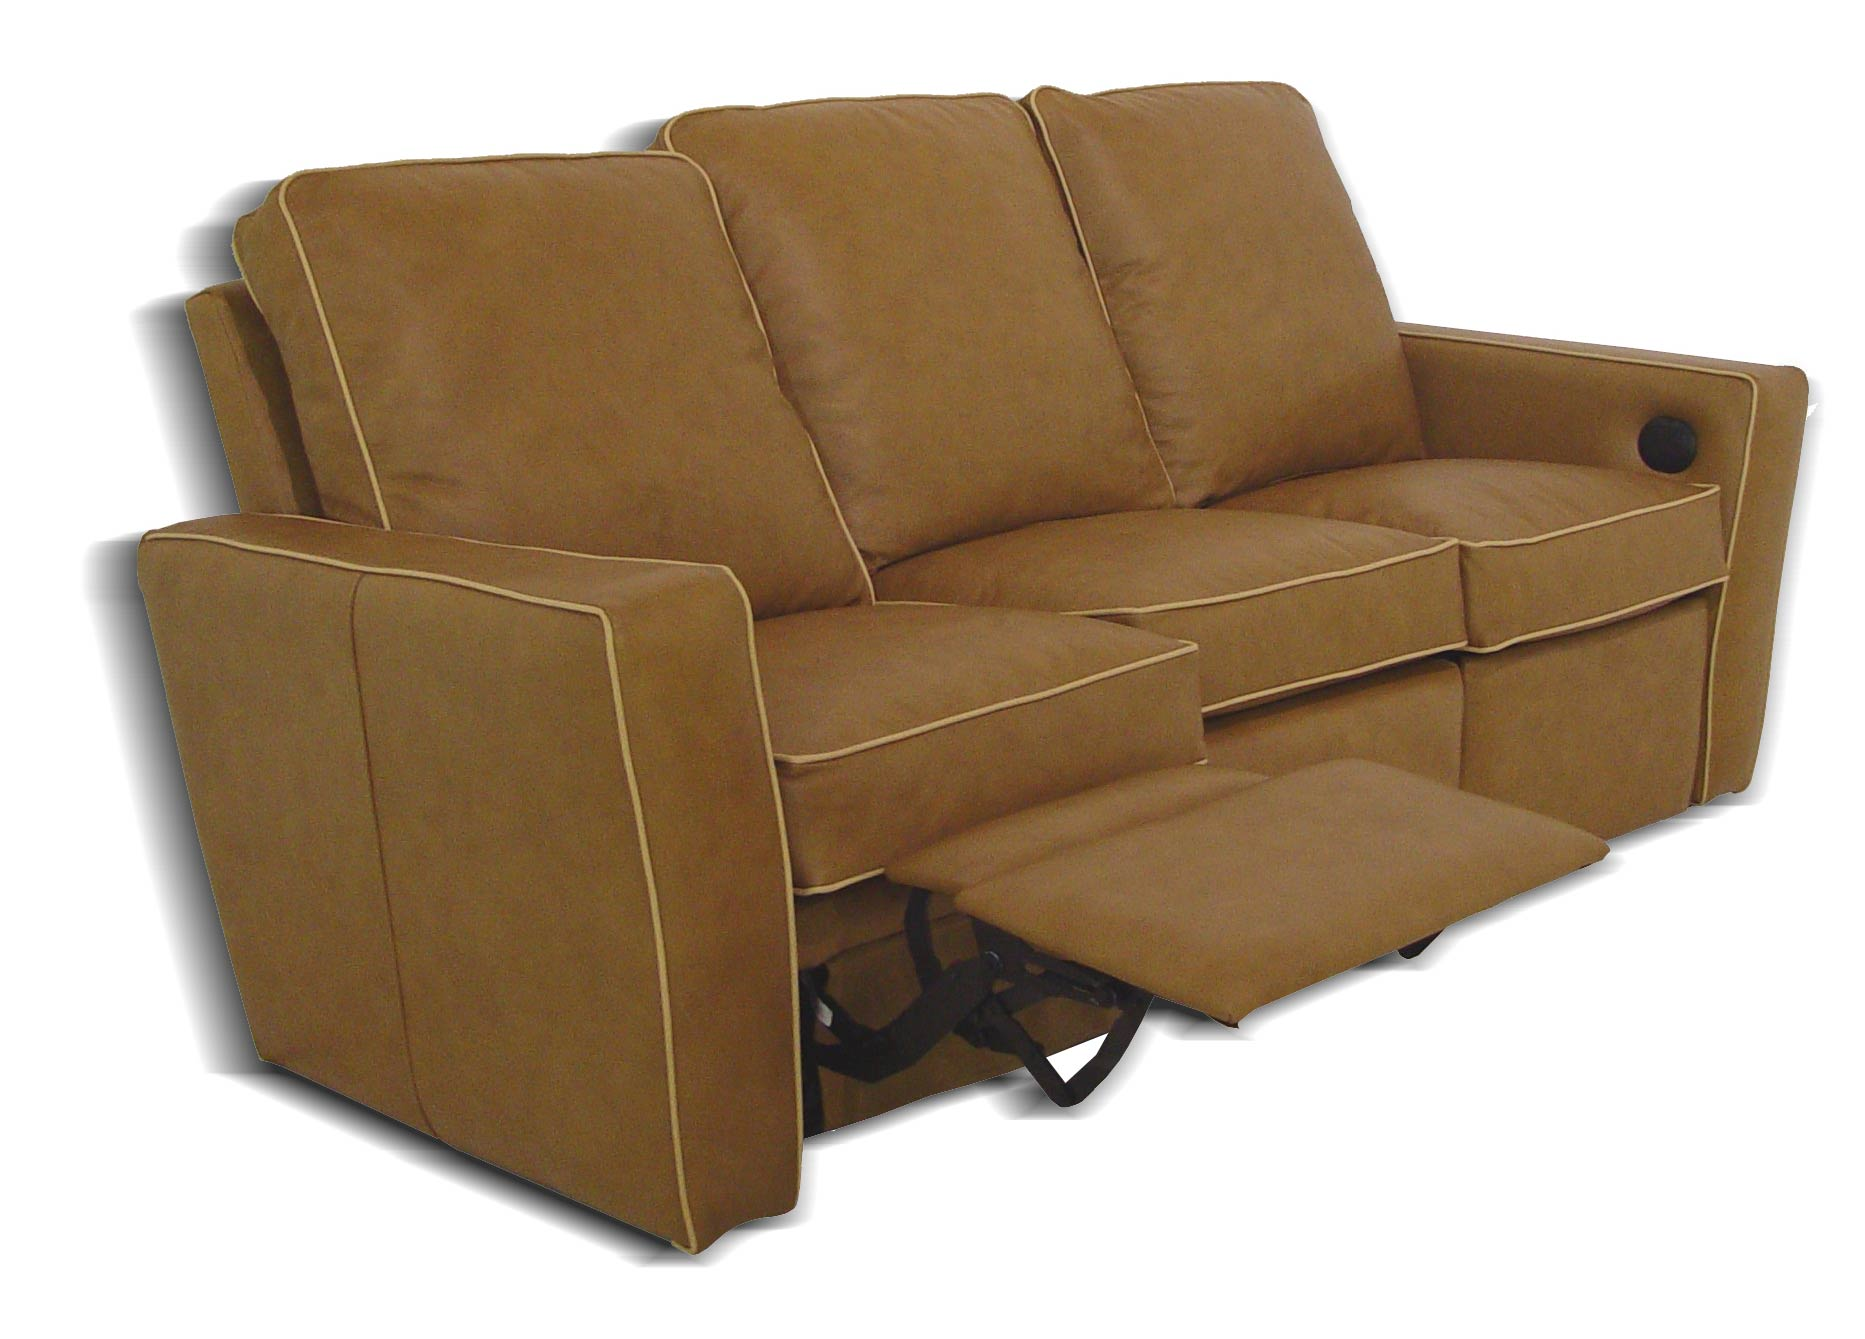 Tuxedo reclining leather sofa Leather loveseat recliners